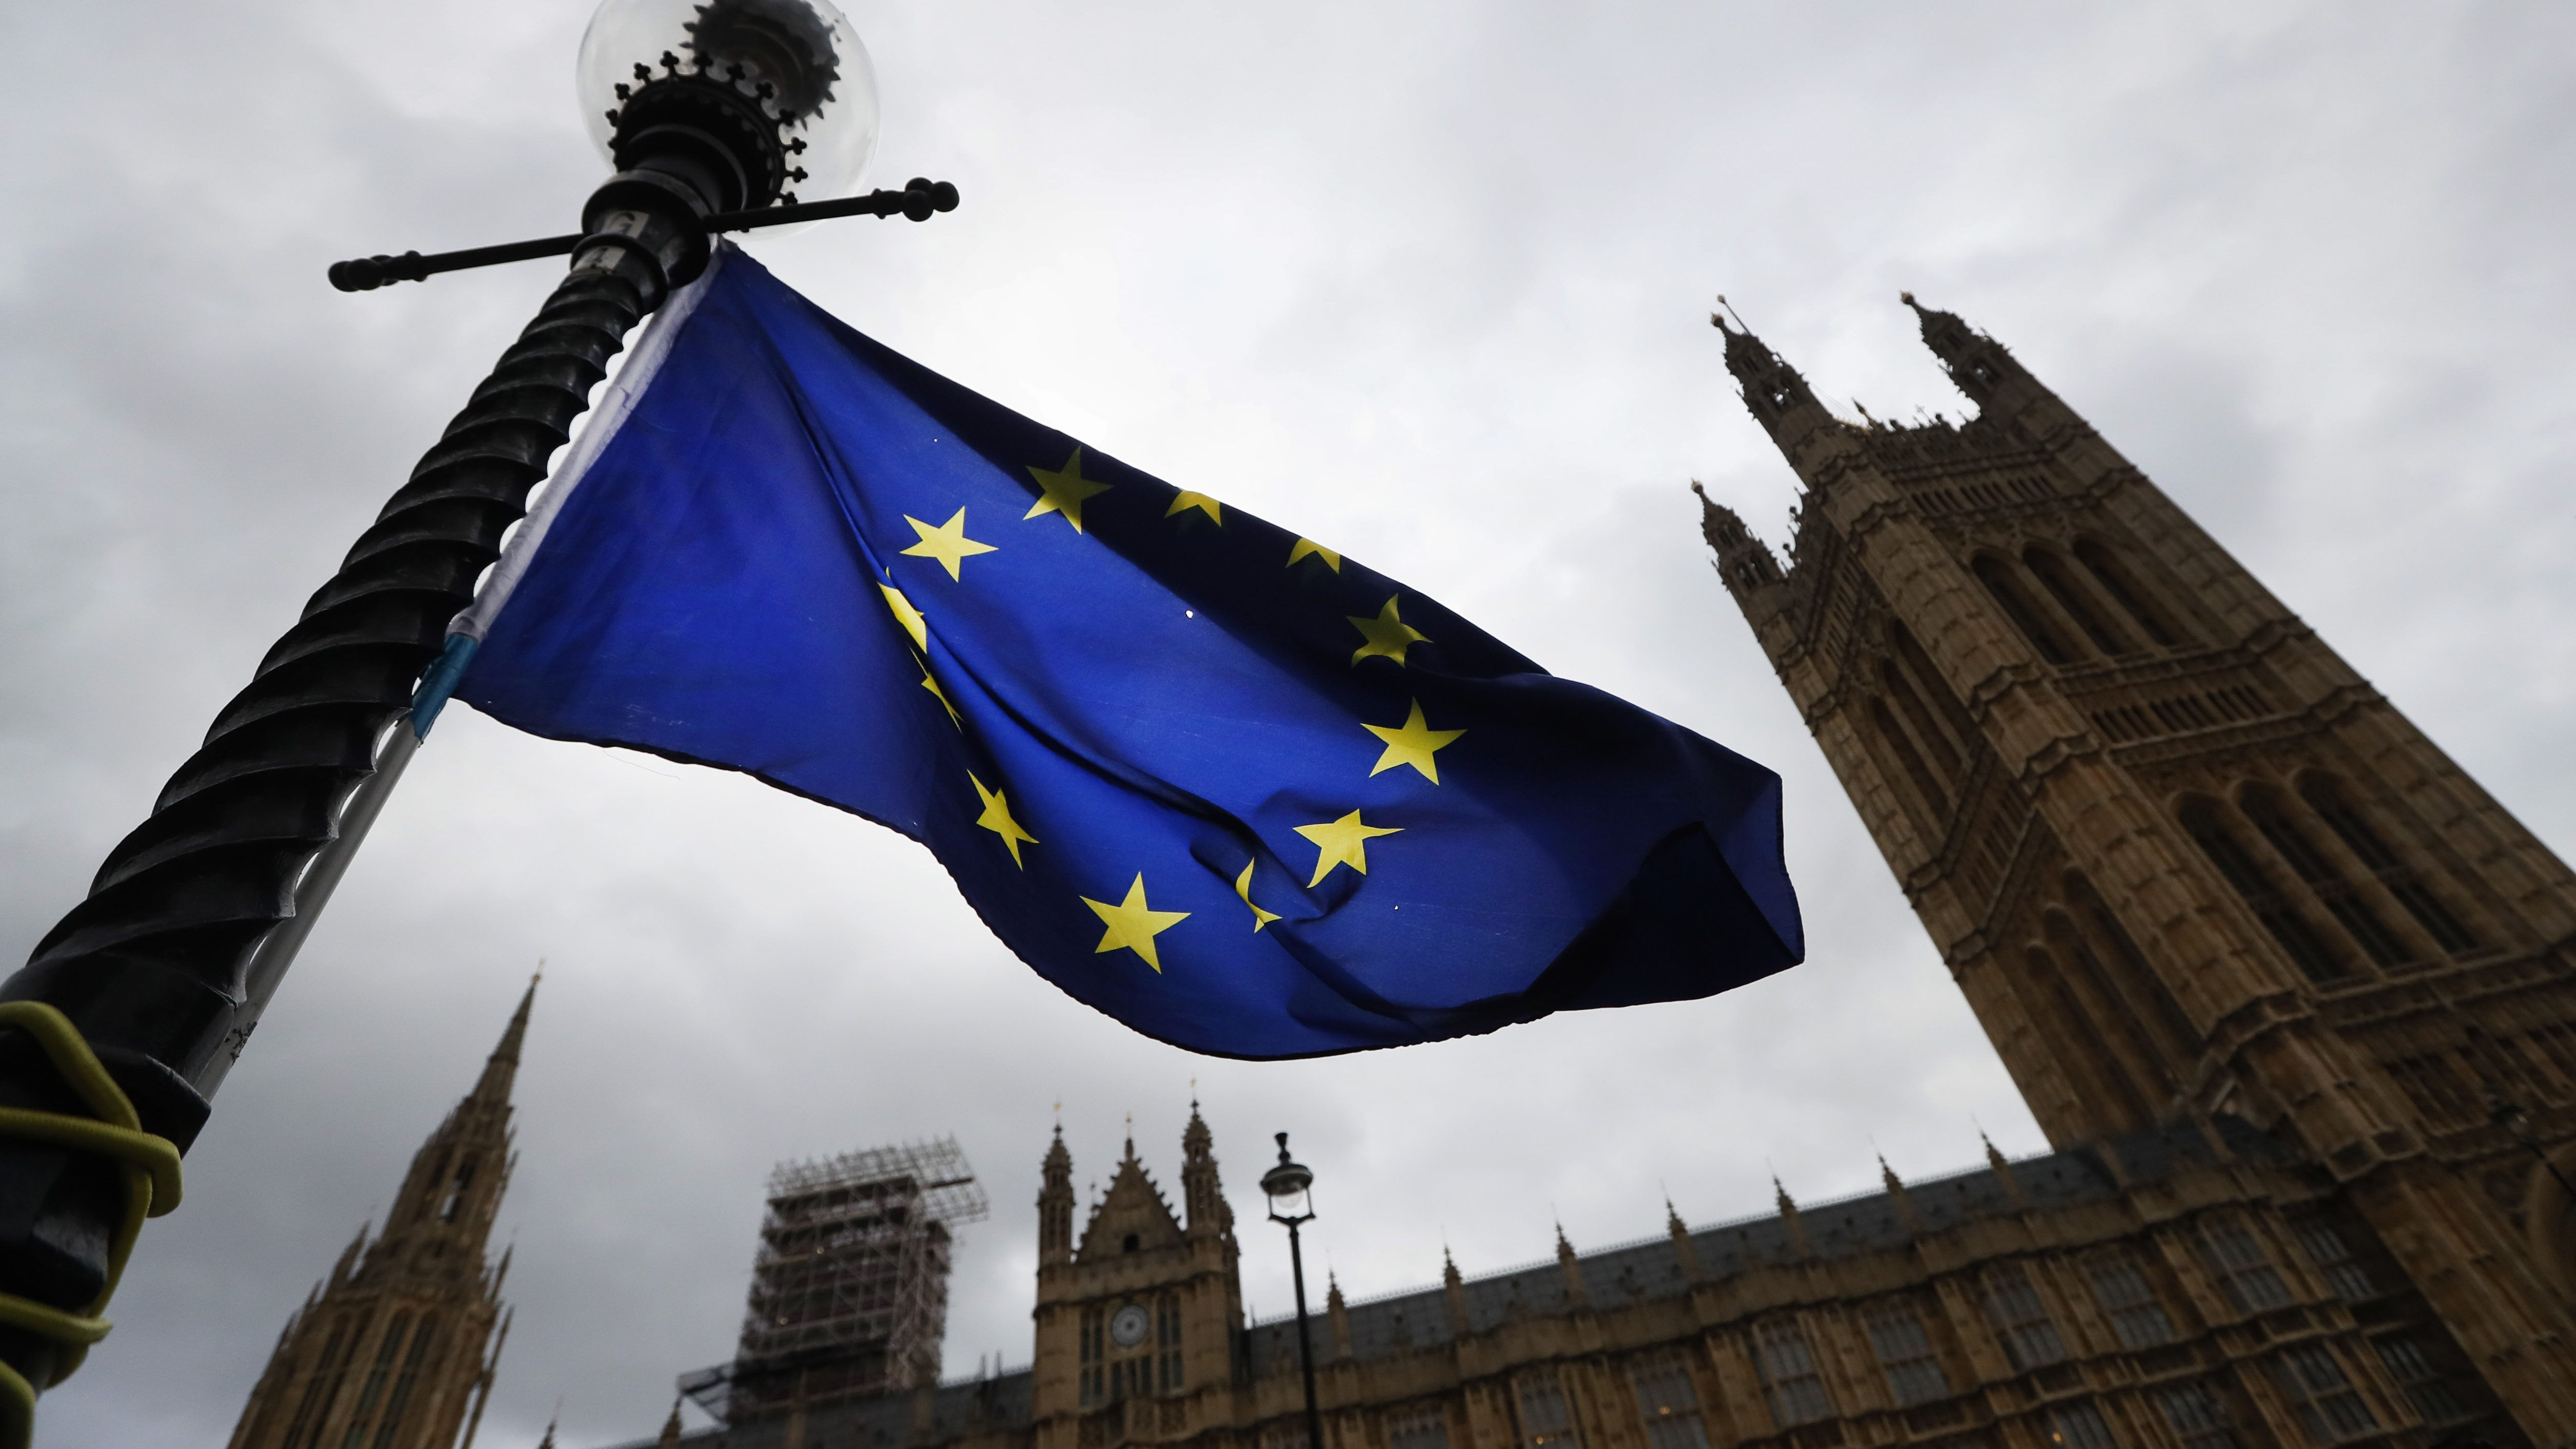 """A European Union flag flies near Parliament in London, Wednesday, Nov. 22, 2017. Britain's Treasury chief has little room to maneuver Wednesday as he reveals his spending plans to a nation bracing for the shock of Brexit. While Philip Hammond is promising to tackle a bleak economic outlook """"head on,"""" a slowing economy and stubborn deficit mean there is little money available to increase spending in the face of demands from teachers, firefighters, the National Health Service and the military.  (AP Photo/Kirsty Wigglesworth)"""